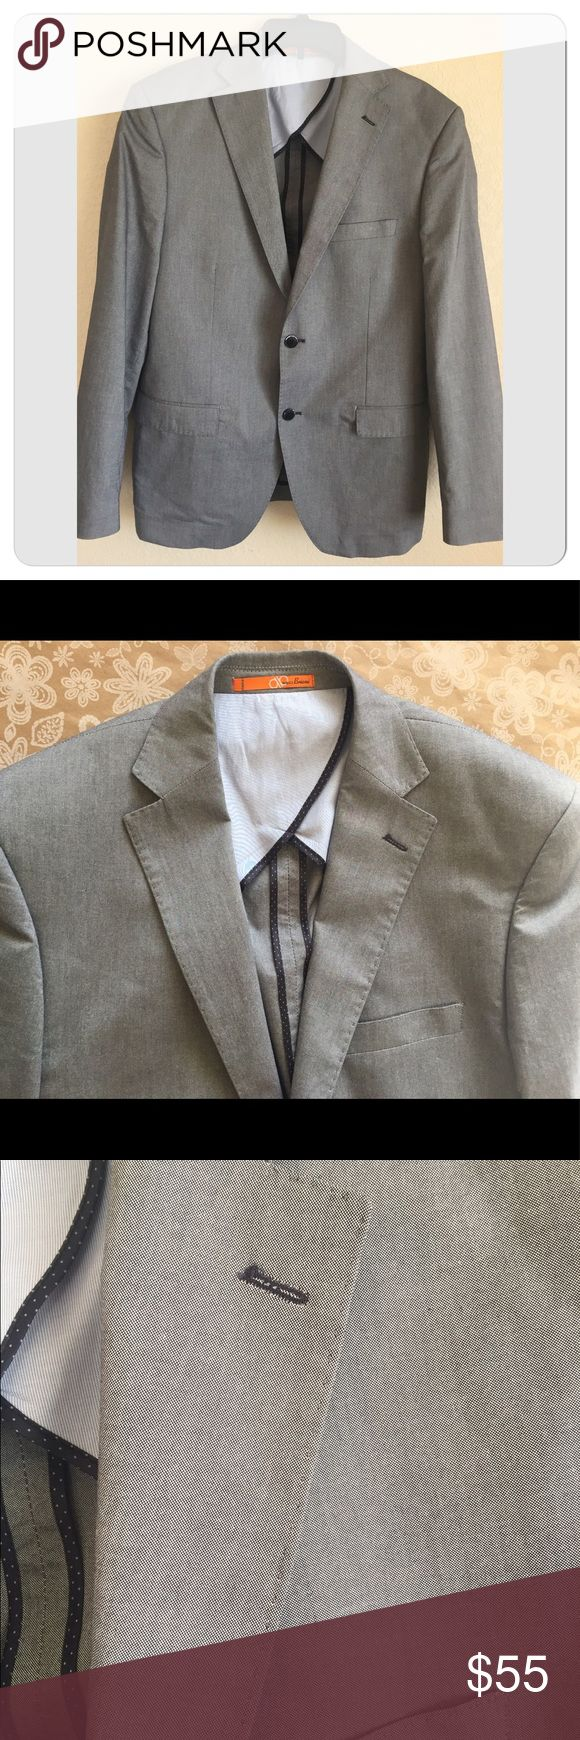 "bianco Brioni Men's suit blazer. Very stylish bianco Brioni cotton suit jacket, Size 42R. Please look measurements (laying flat): Chest 21 1/2"" Waist 20"" Sleeve 25 1/2"" Shoulders 19"" 97% cotton 3% Lycra. Made in Italy. Excellent like new condition. bianco Brioni Suits & Blazers"